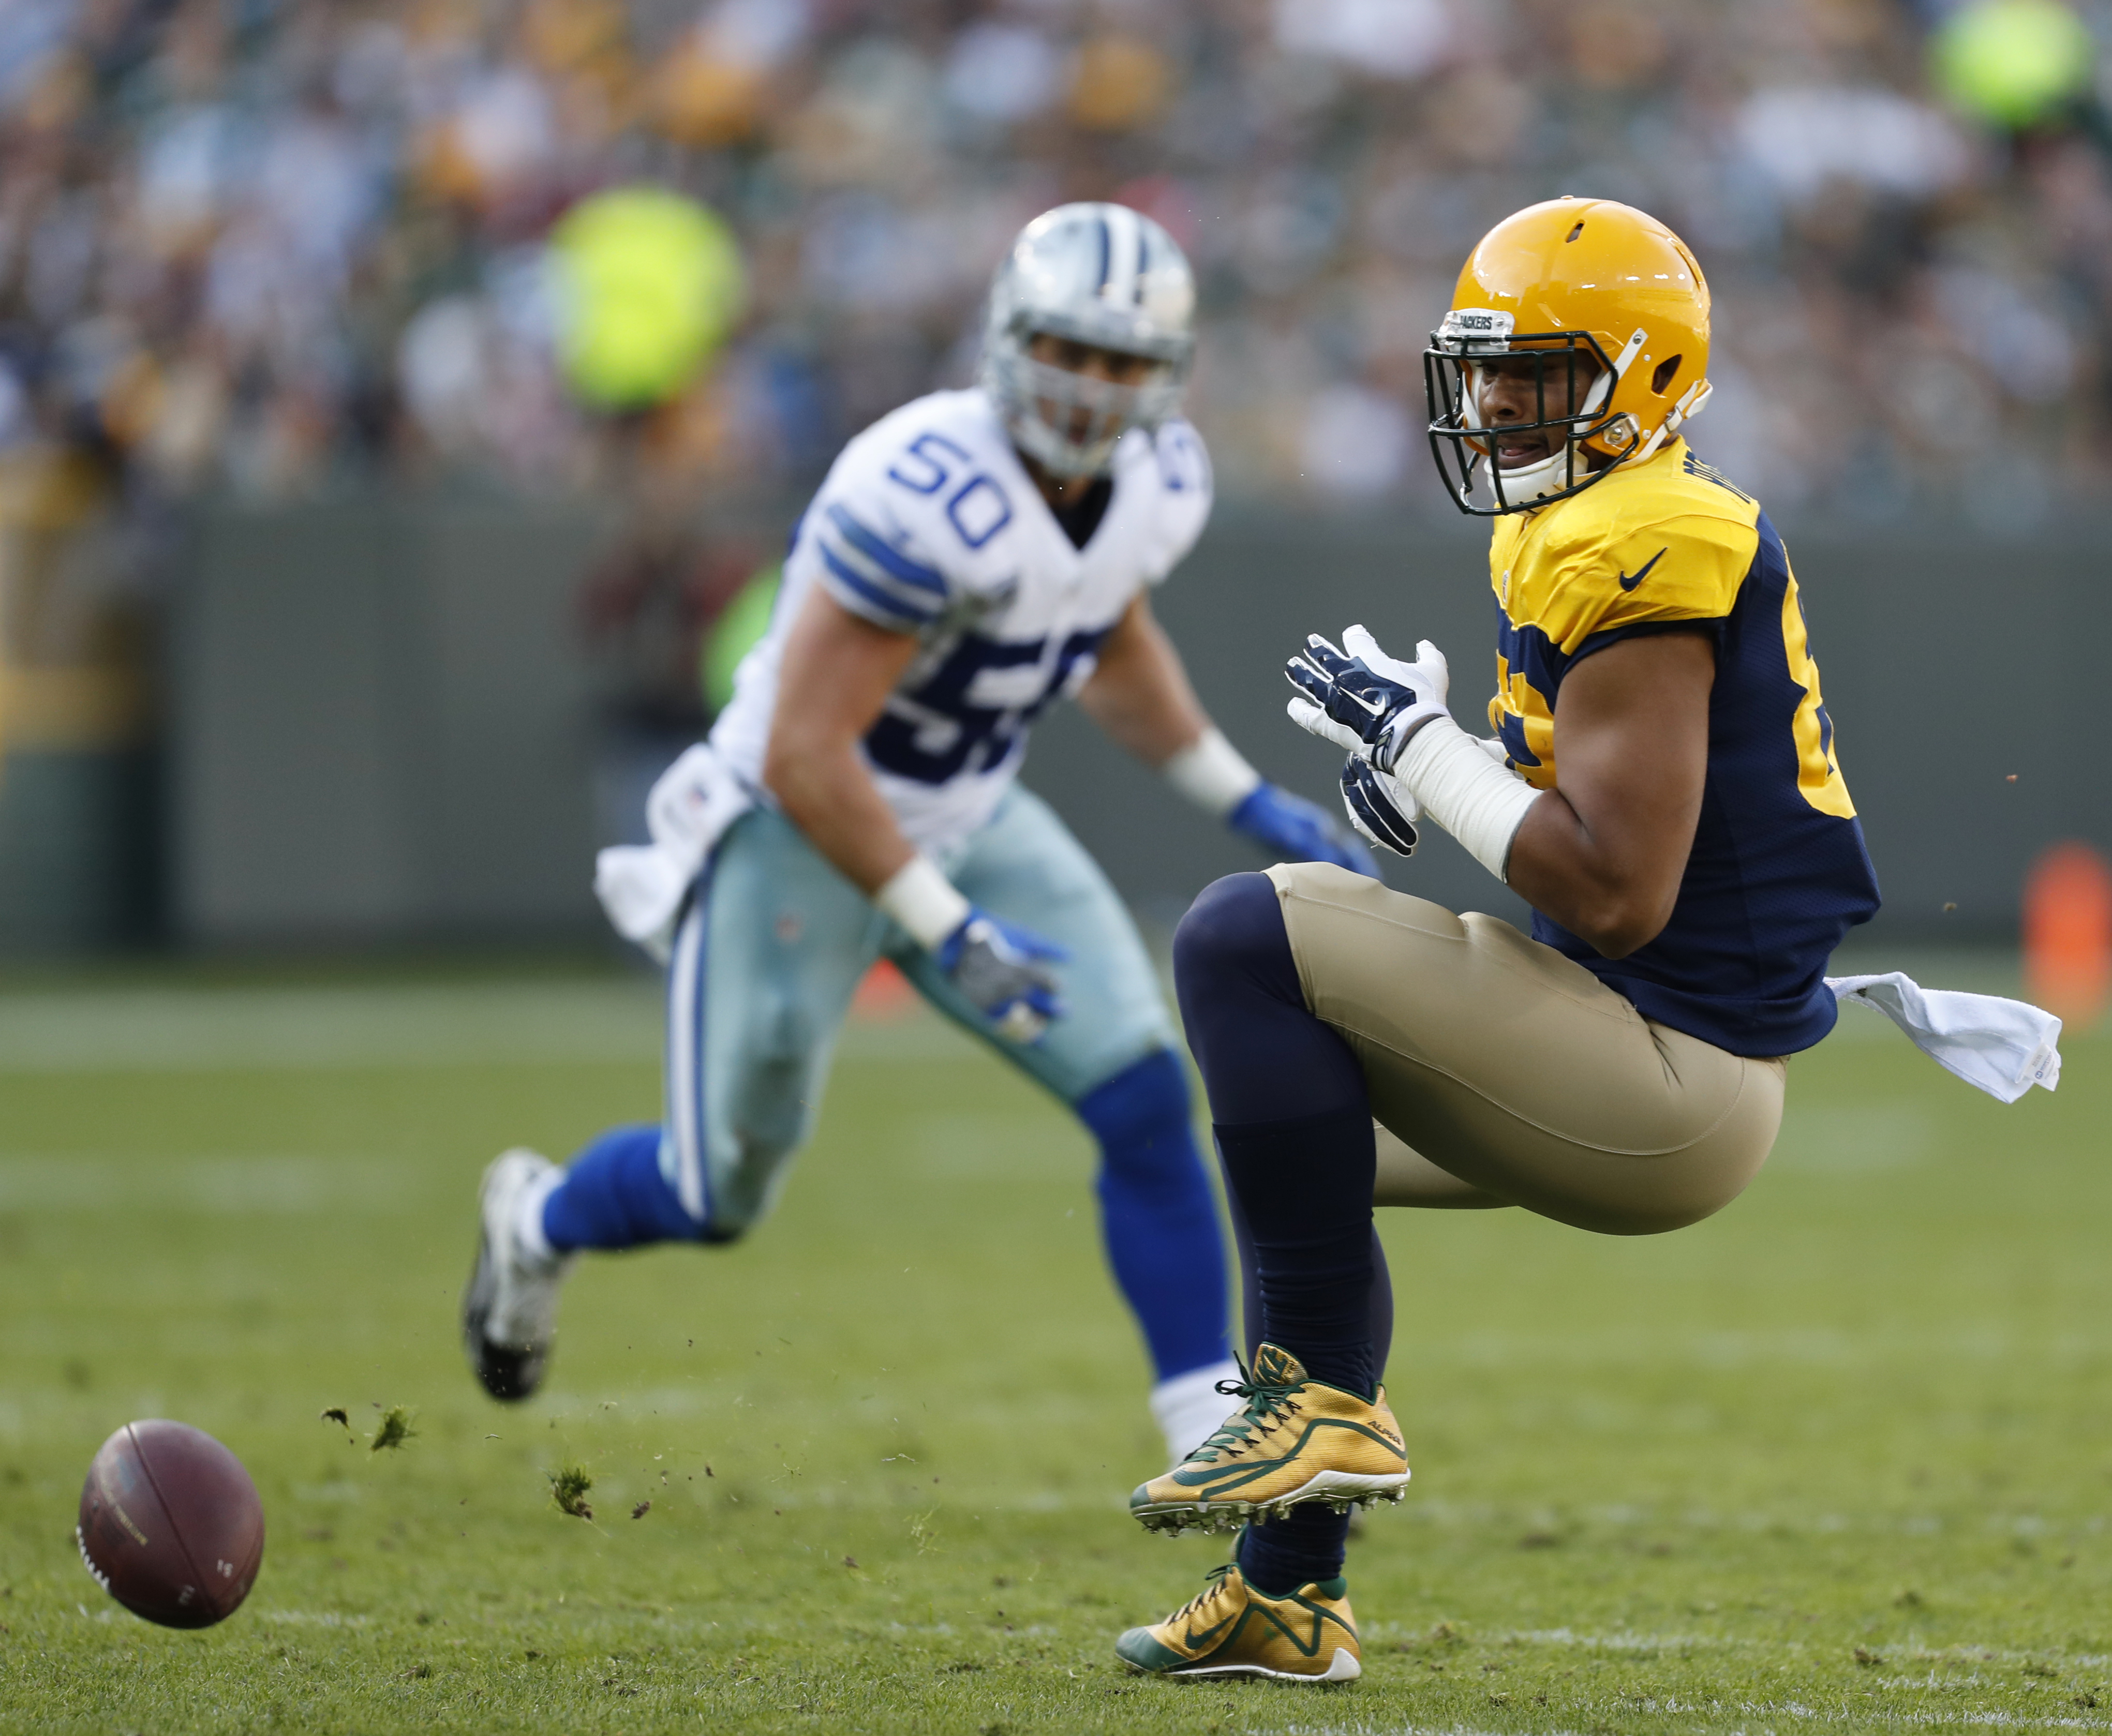 Green Bay Packers' Richard Rodgers can't catch a pass in front of Dallas Cowboys' Sean Lee (50) during the first half of an NFL football game Sunday, Oct. 16, 2016, in Green Bay, Wis. (AP Photo/Matt Ludtke)